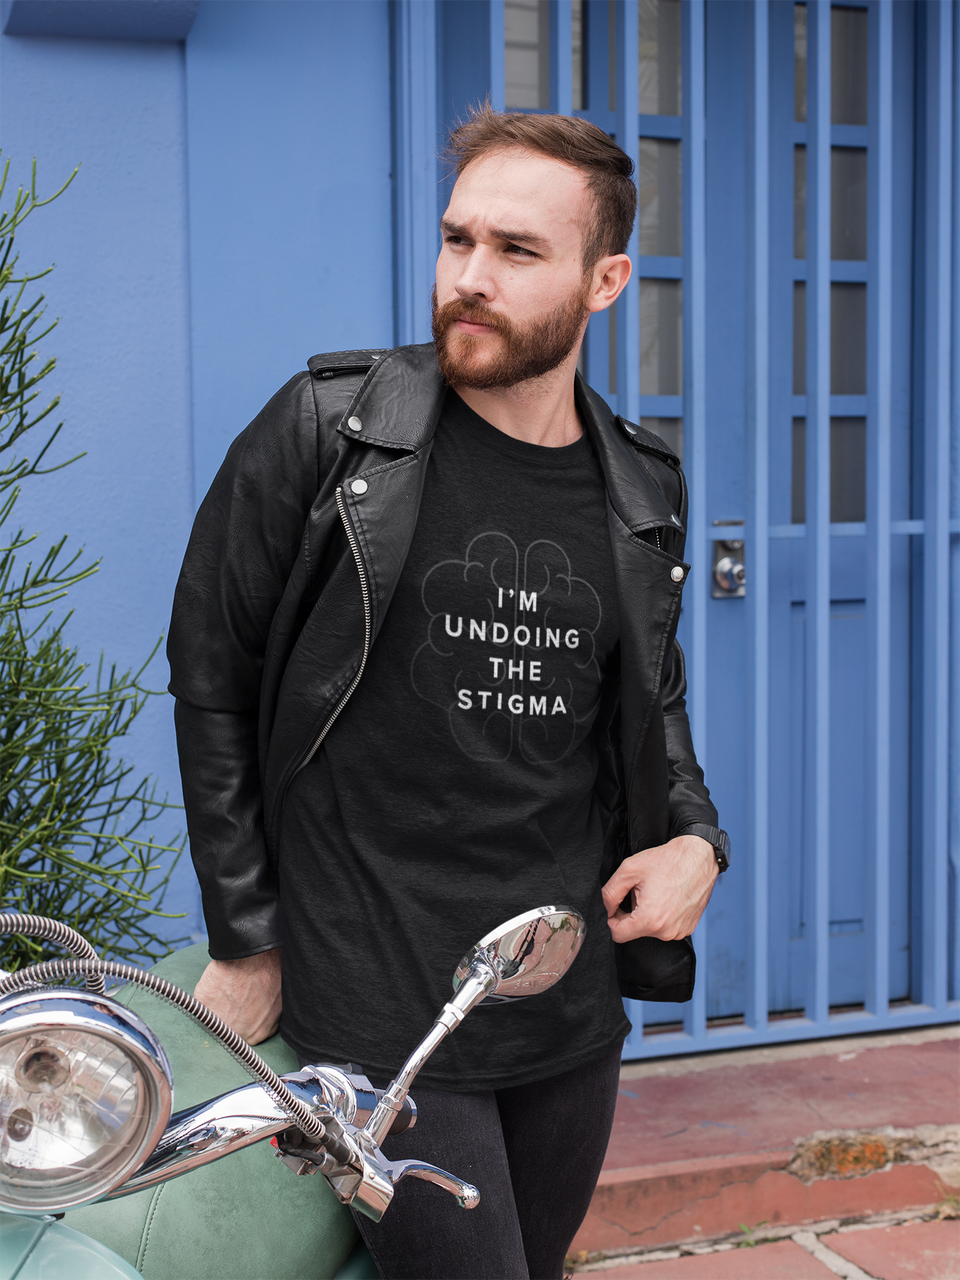 I'm Undoing the Stigma Mindfulness - Black Unisex mental health awareness T-shirt worn by a male model posing outdoors